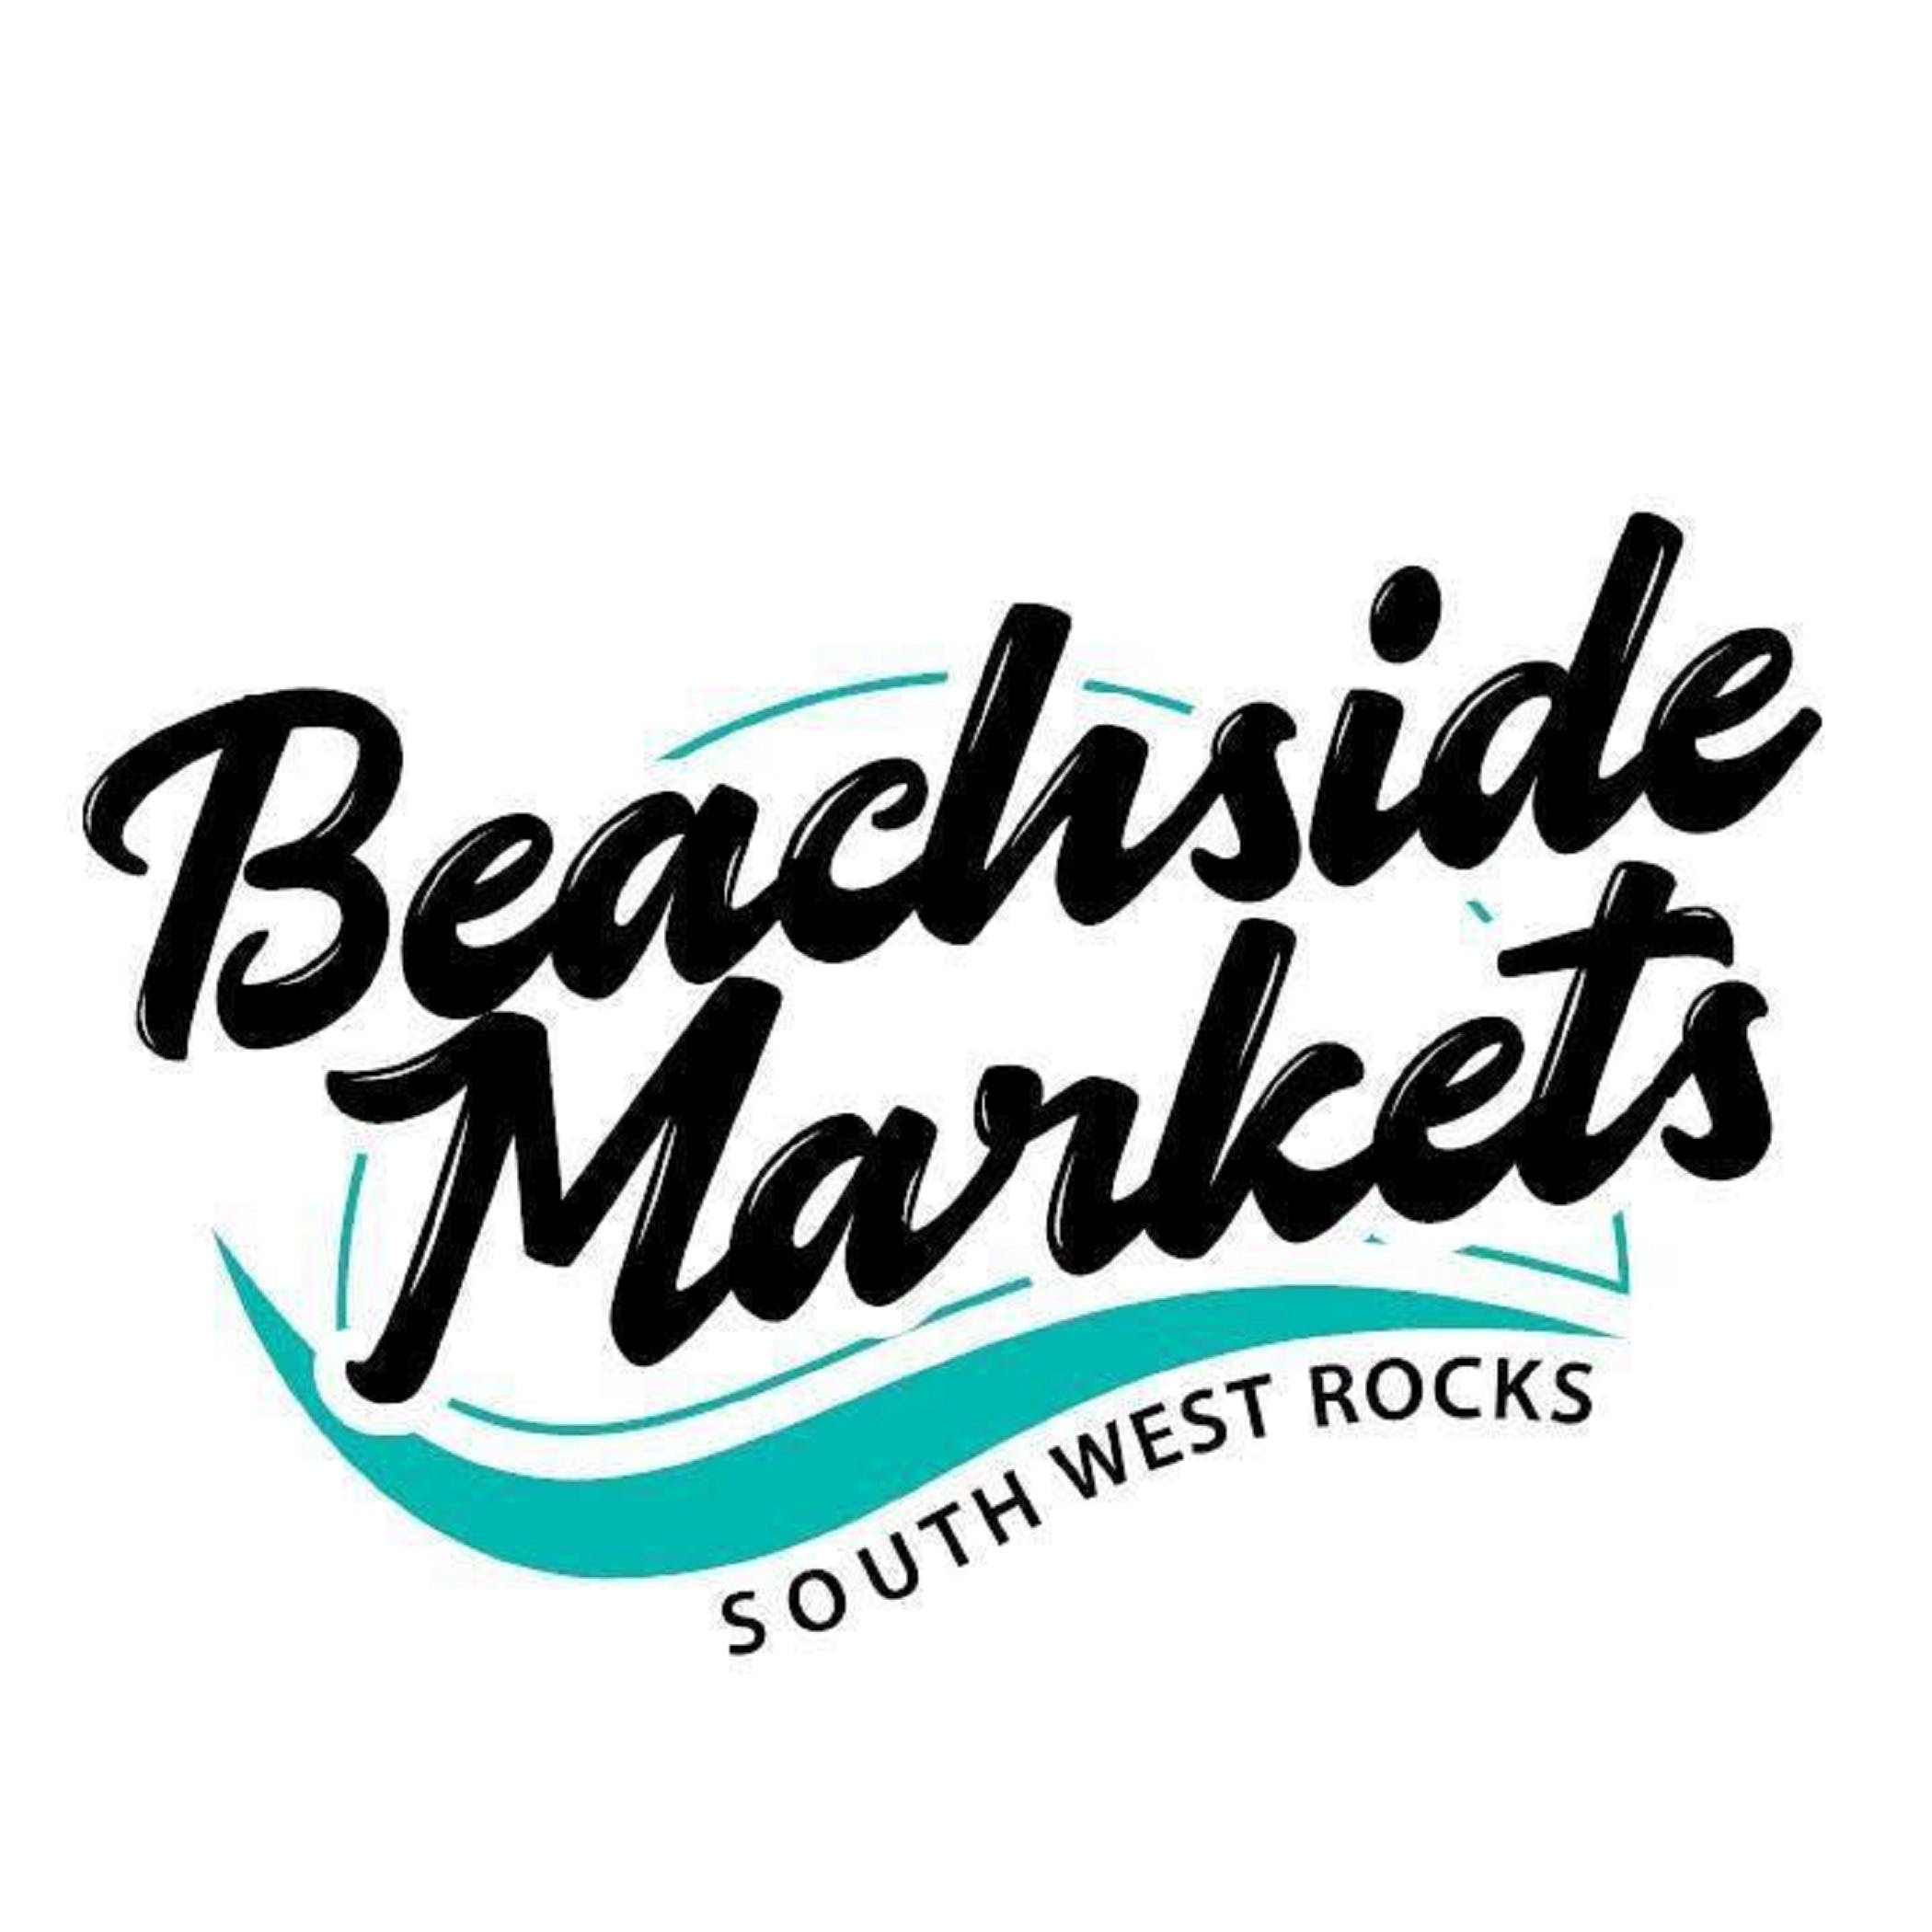 Beachside Markets South West Rocks - Accommodation Port Macquarie